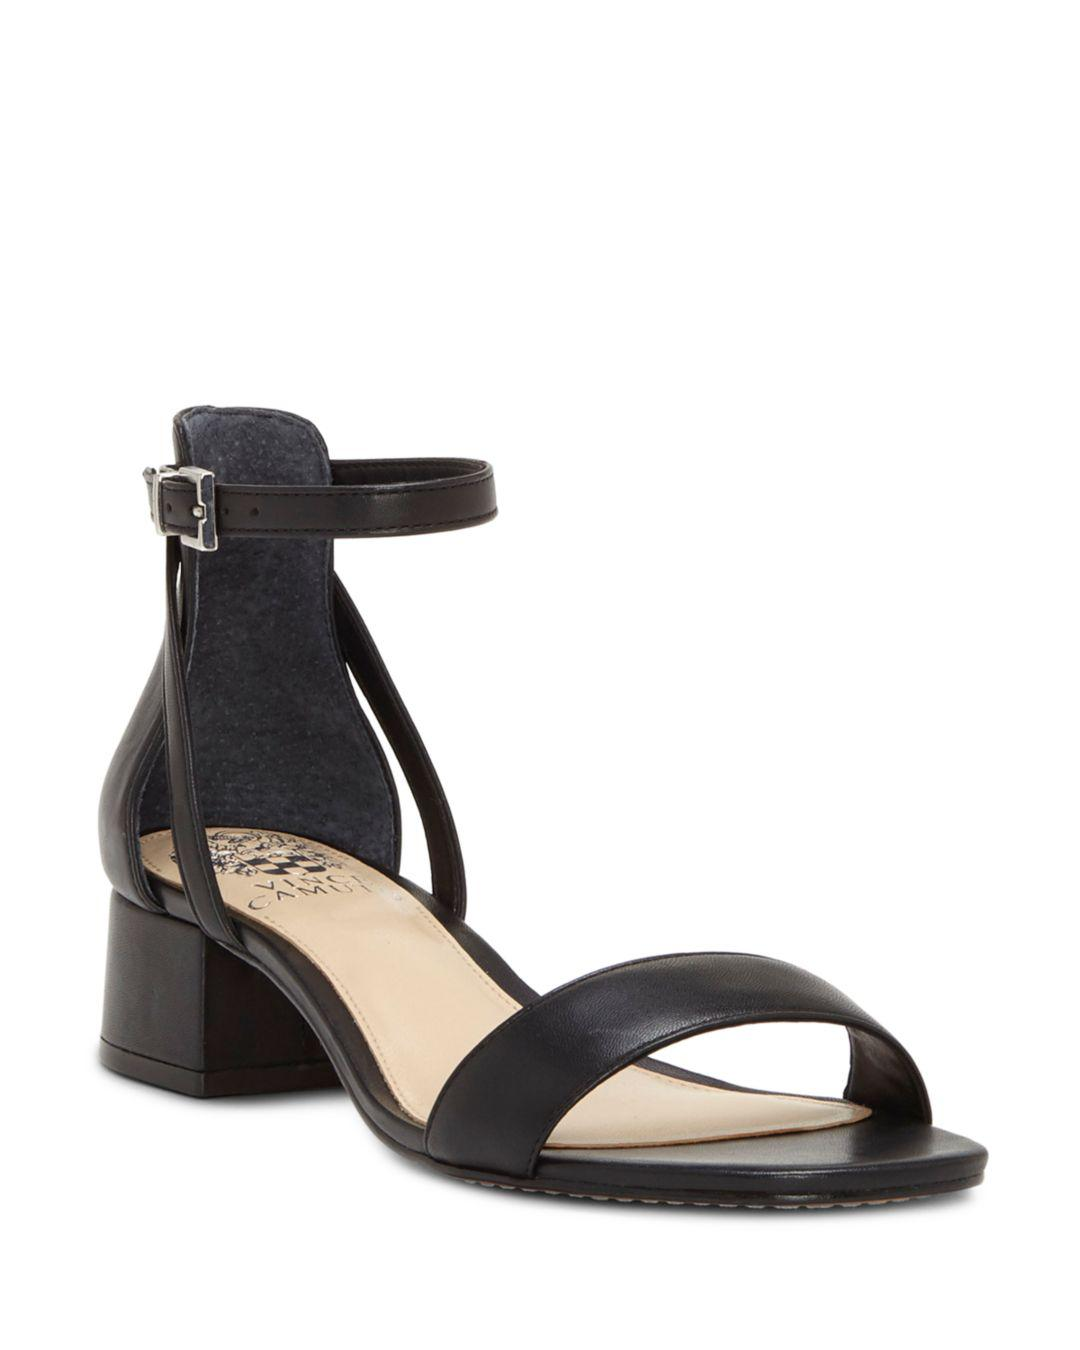 0ca75ccb5c Vince Camuto Shetana Block-heel Dress Sandals in Black - Lyst